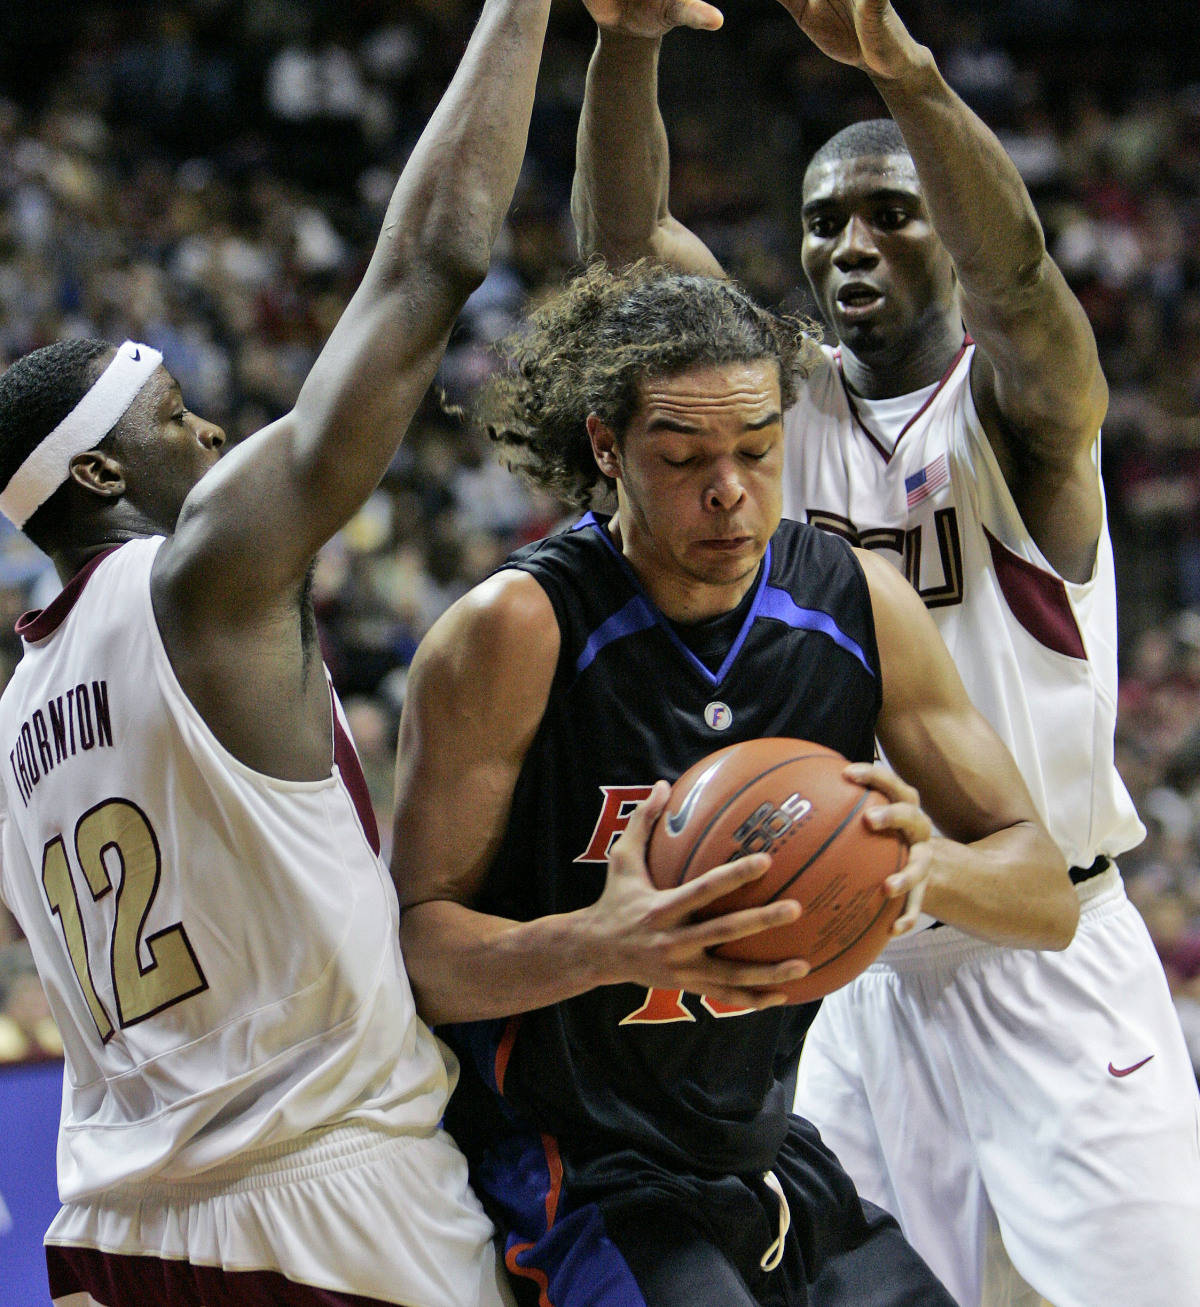 Florida's Joakim Noah, center, is surrounded by Florida State's Al Thornton, left, and Uche Echefu during the second half of a college basketball game, Sunday, Dec. 3, 2006, in Tallahassee, Fla.(AP Photo/Phil Coale)